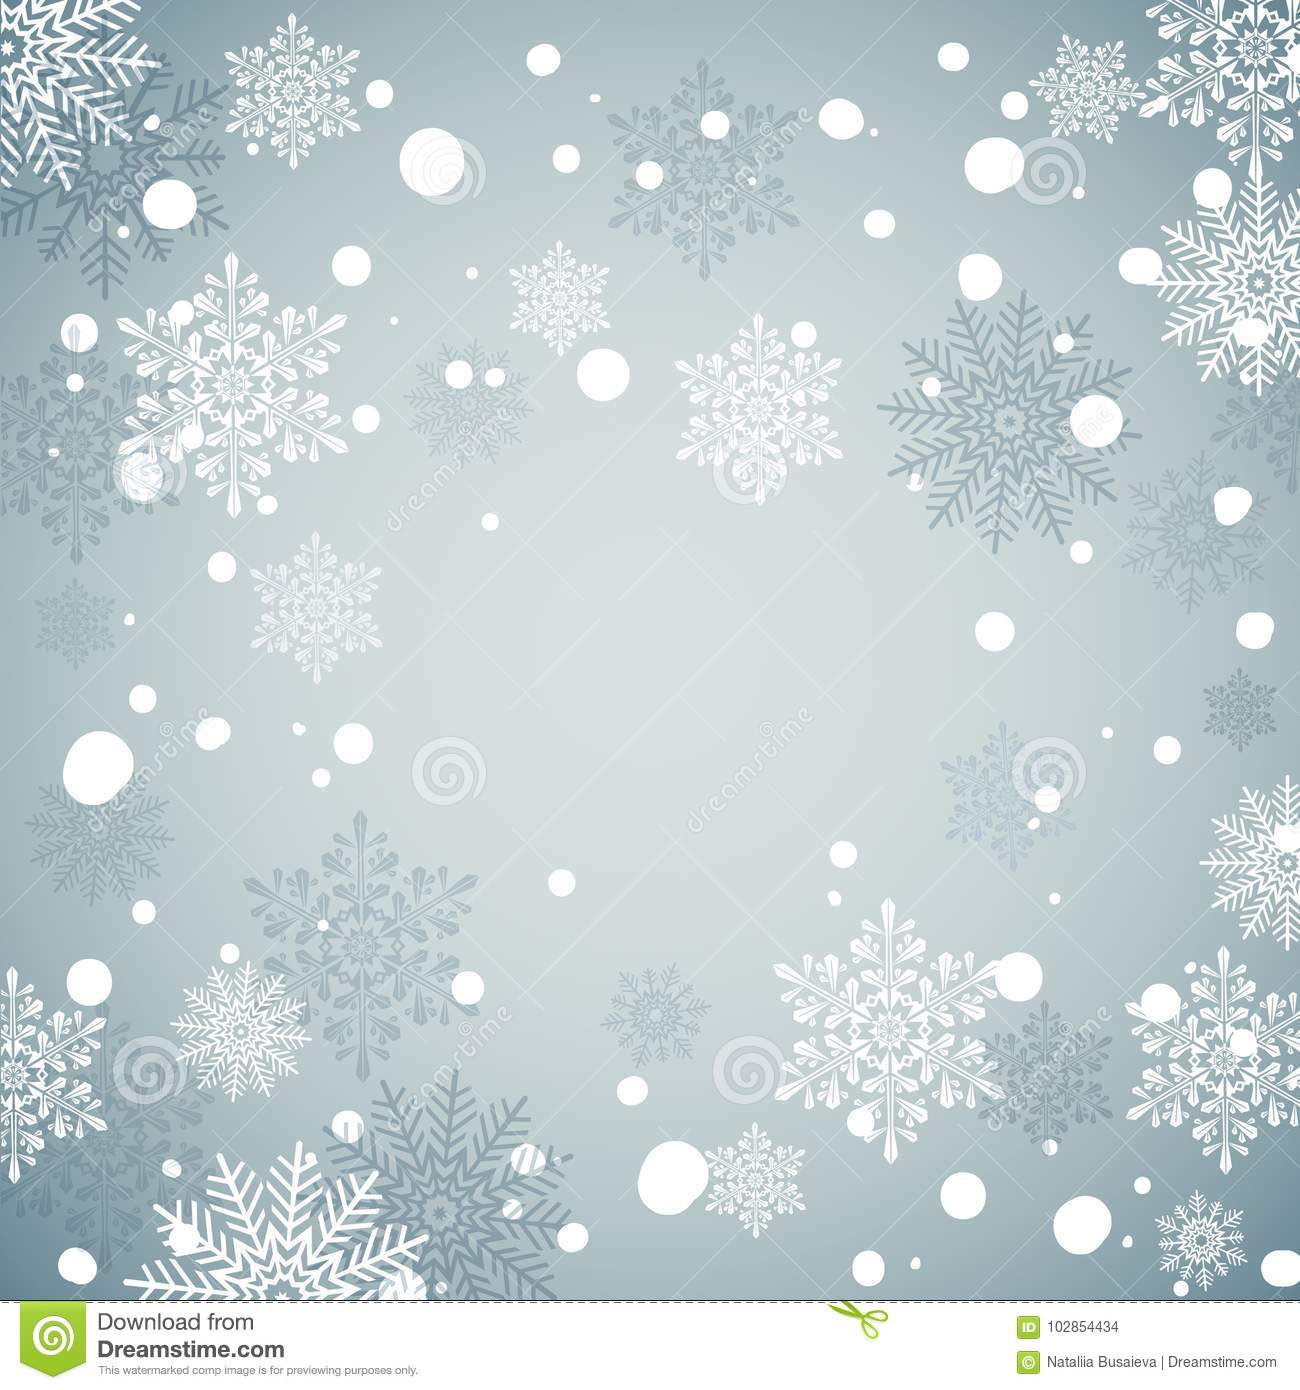 winter holiday snow background blue christmas backdrop new year